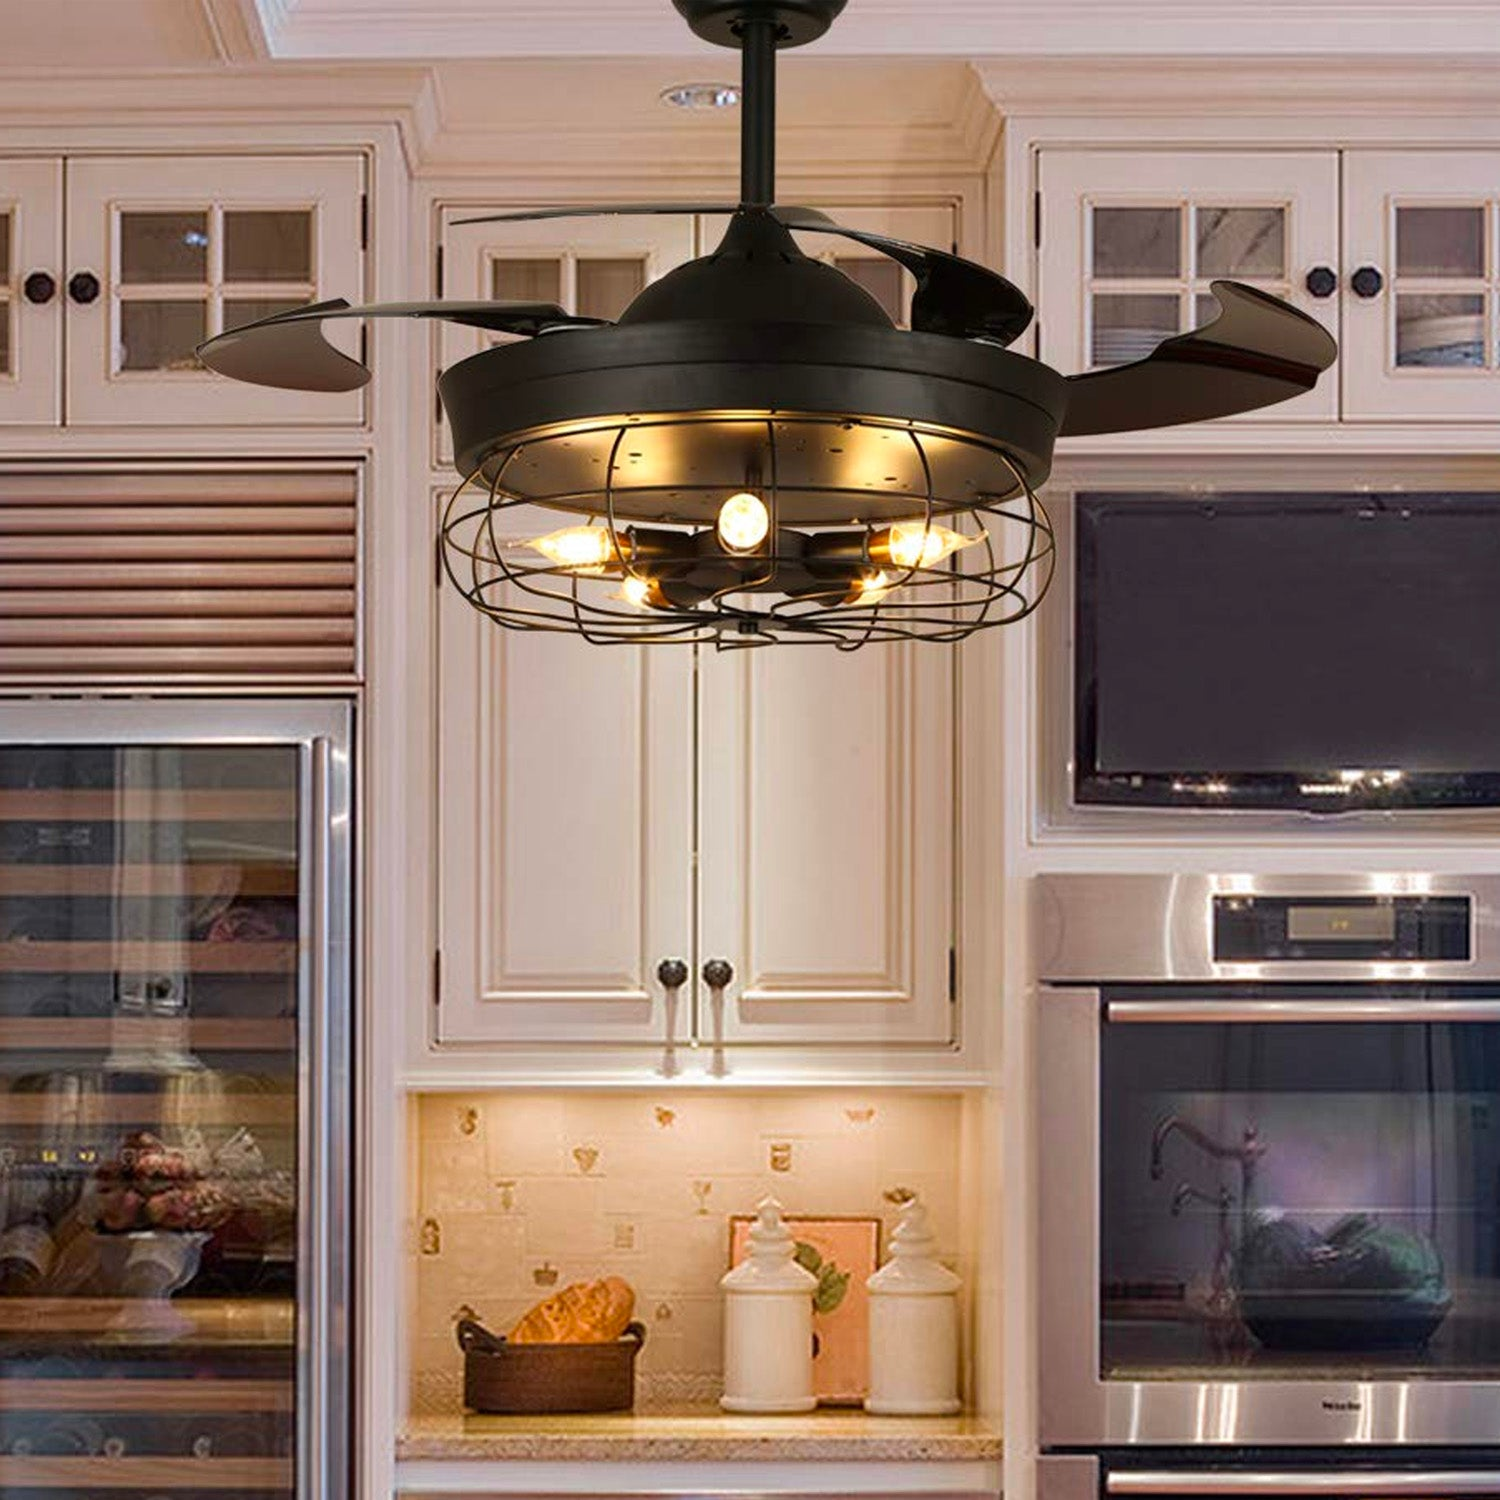 Black Industrial Ceiling Fan With Invisible Blades - Kitchen